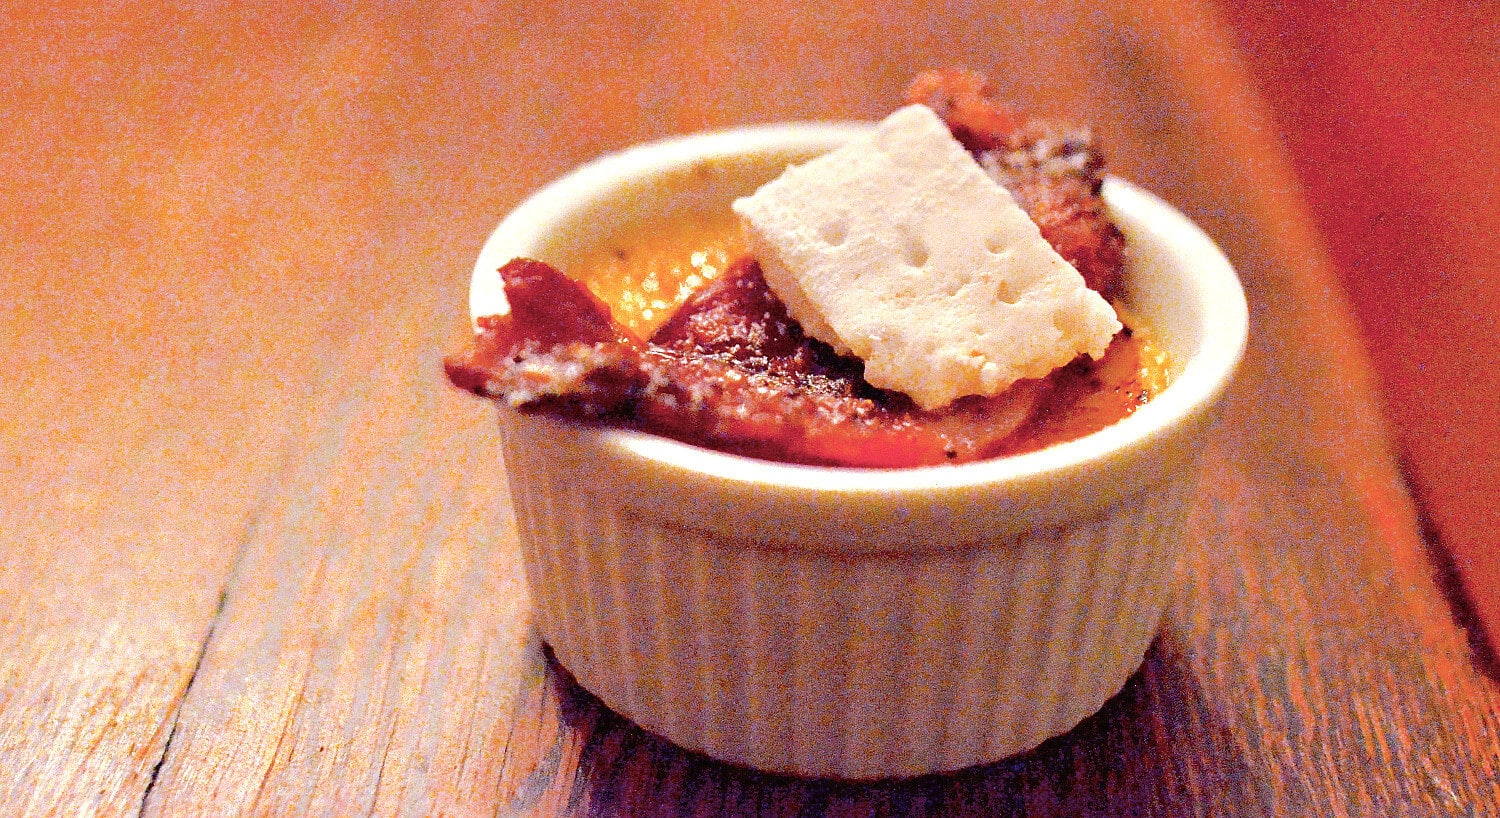 Cheesey dish baked in a white ramekin and garnished with bacon.